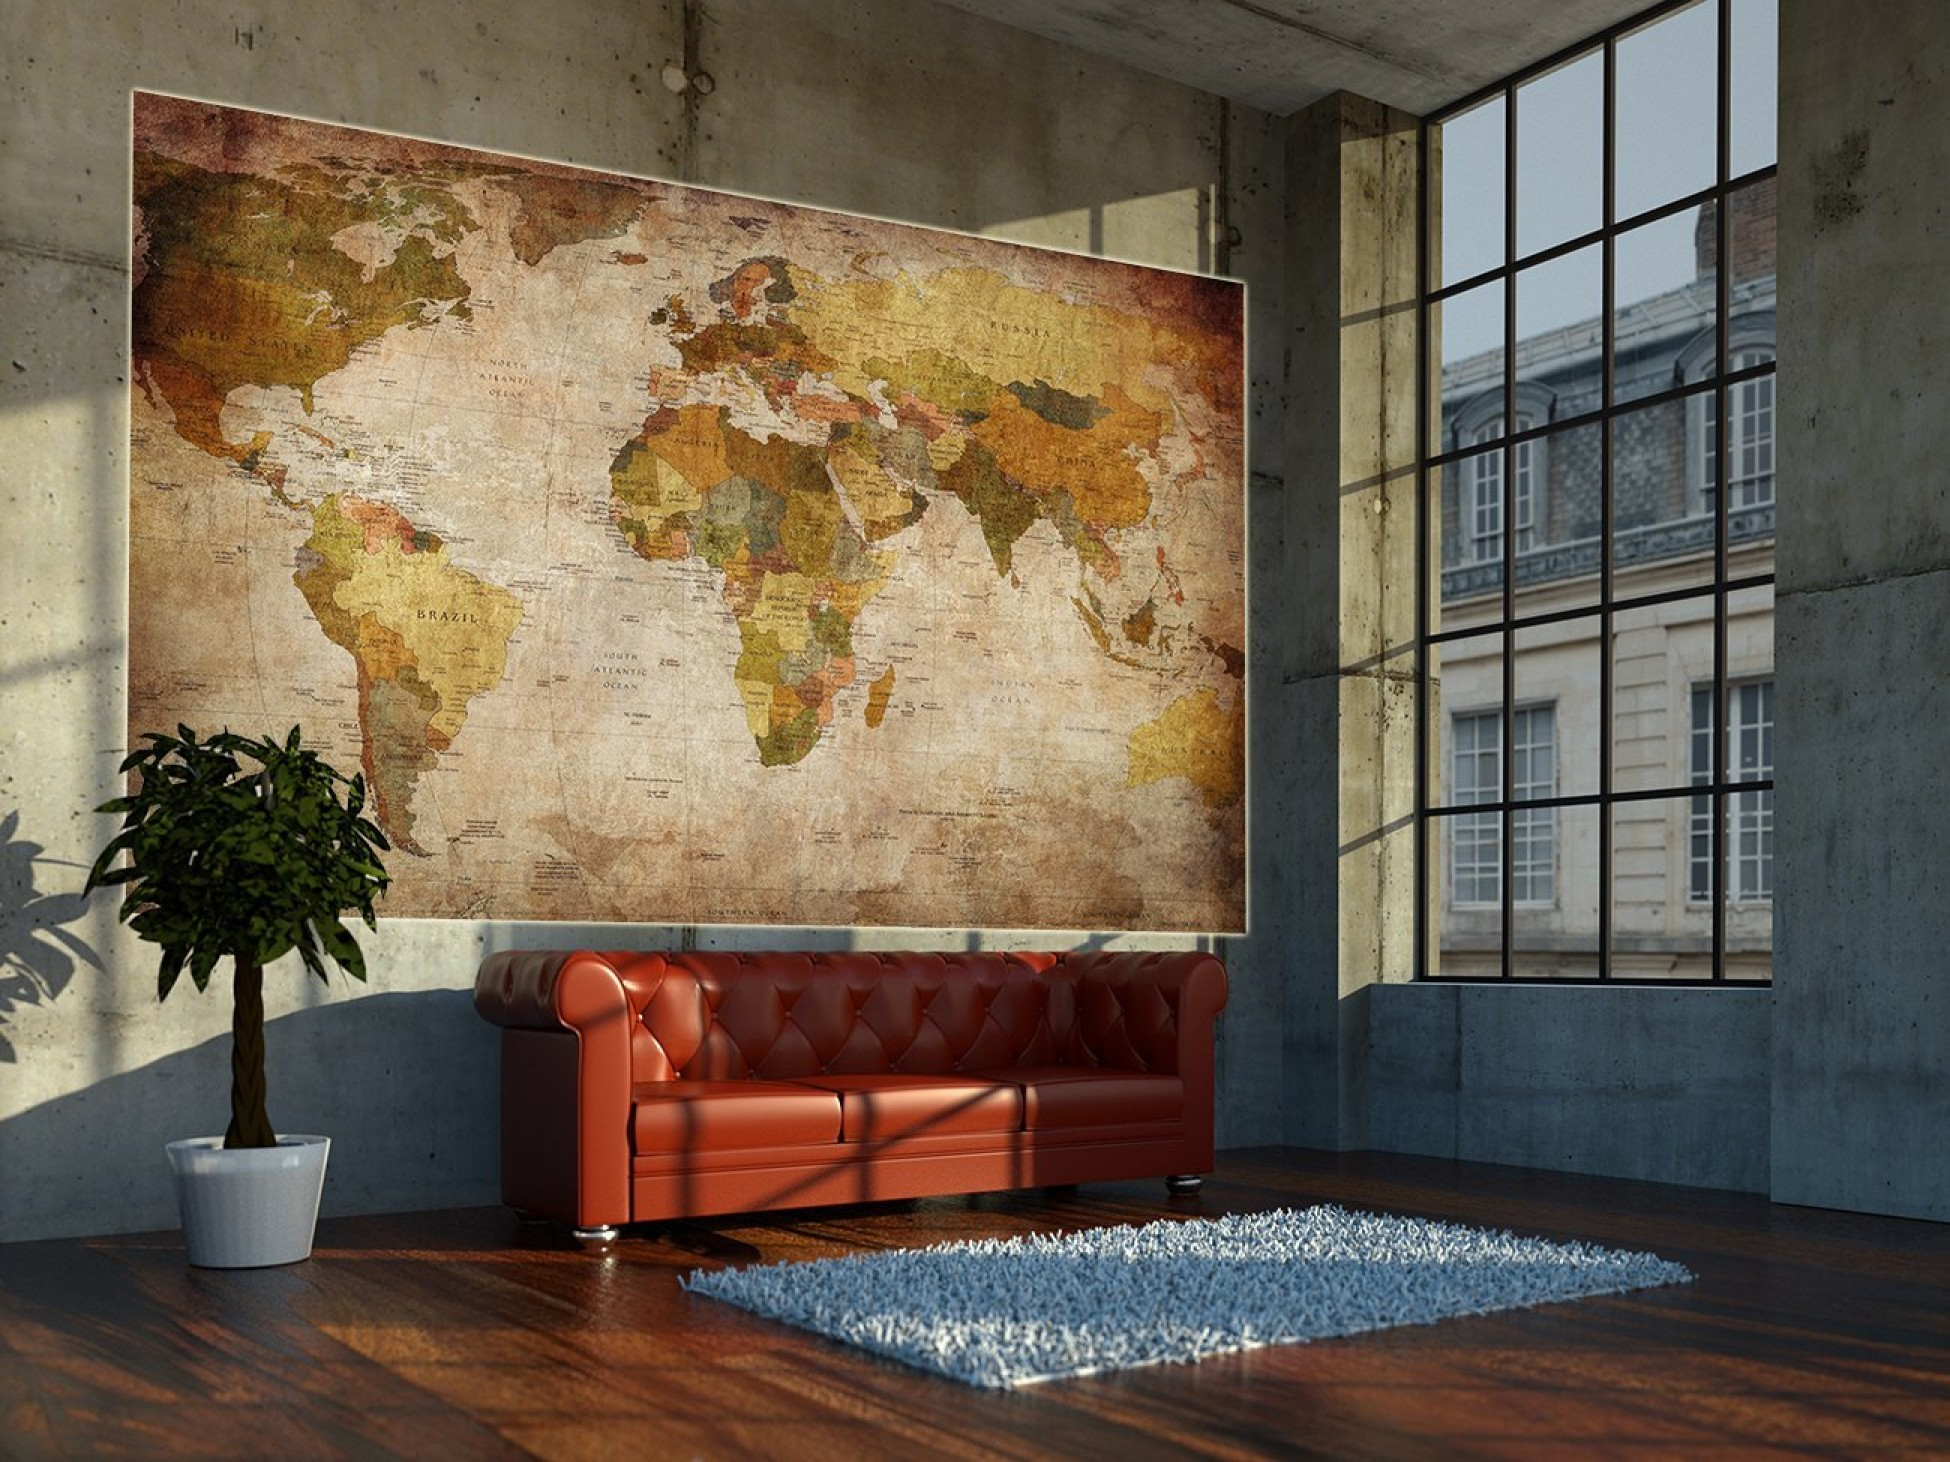 World map photo wallpaper mural vintage retro motif xxl for Antique wallpaper mural